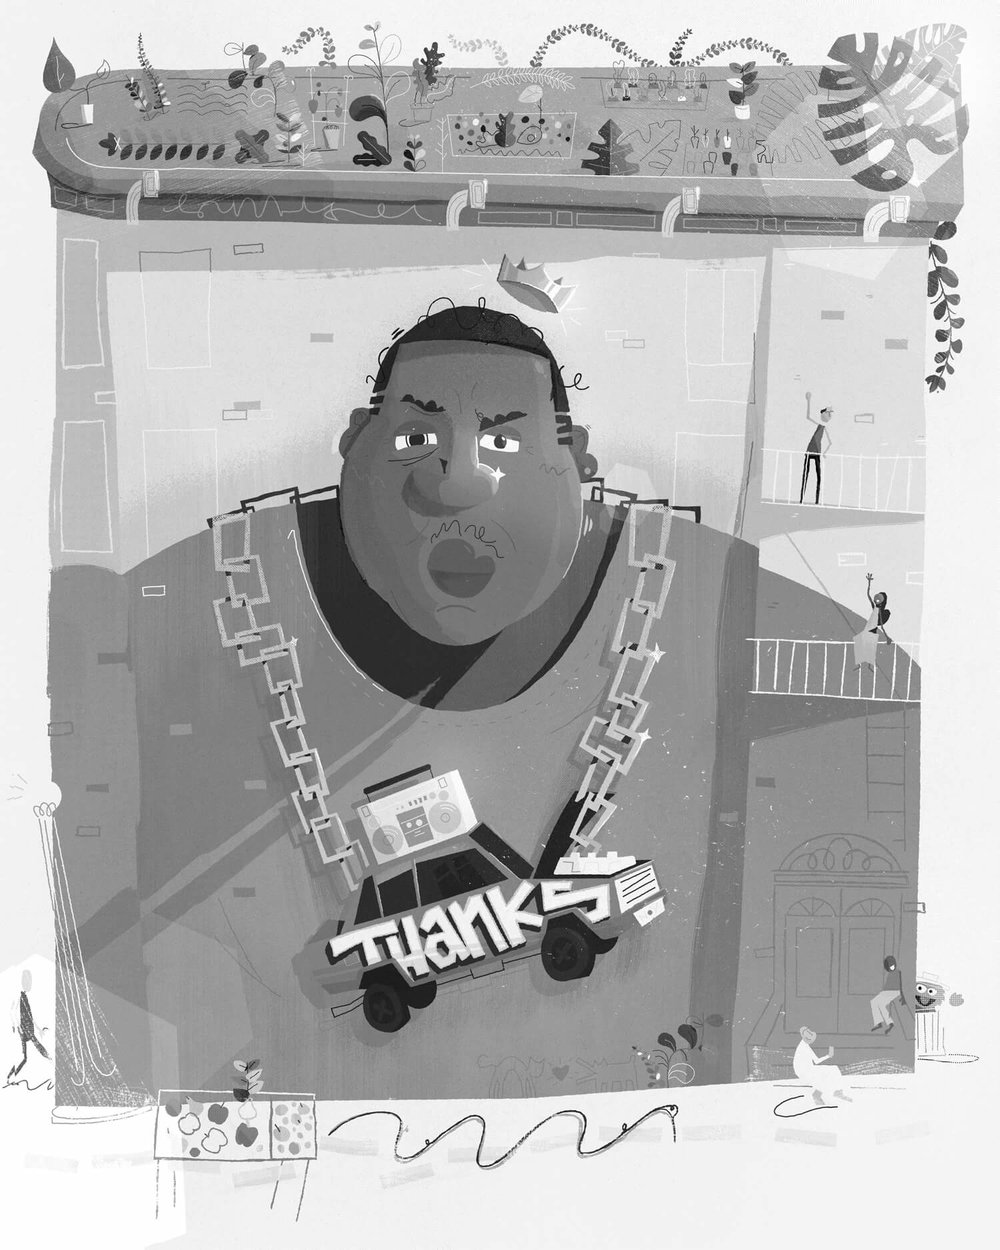 biggie-thanks-process-11.jpg